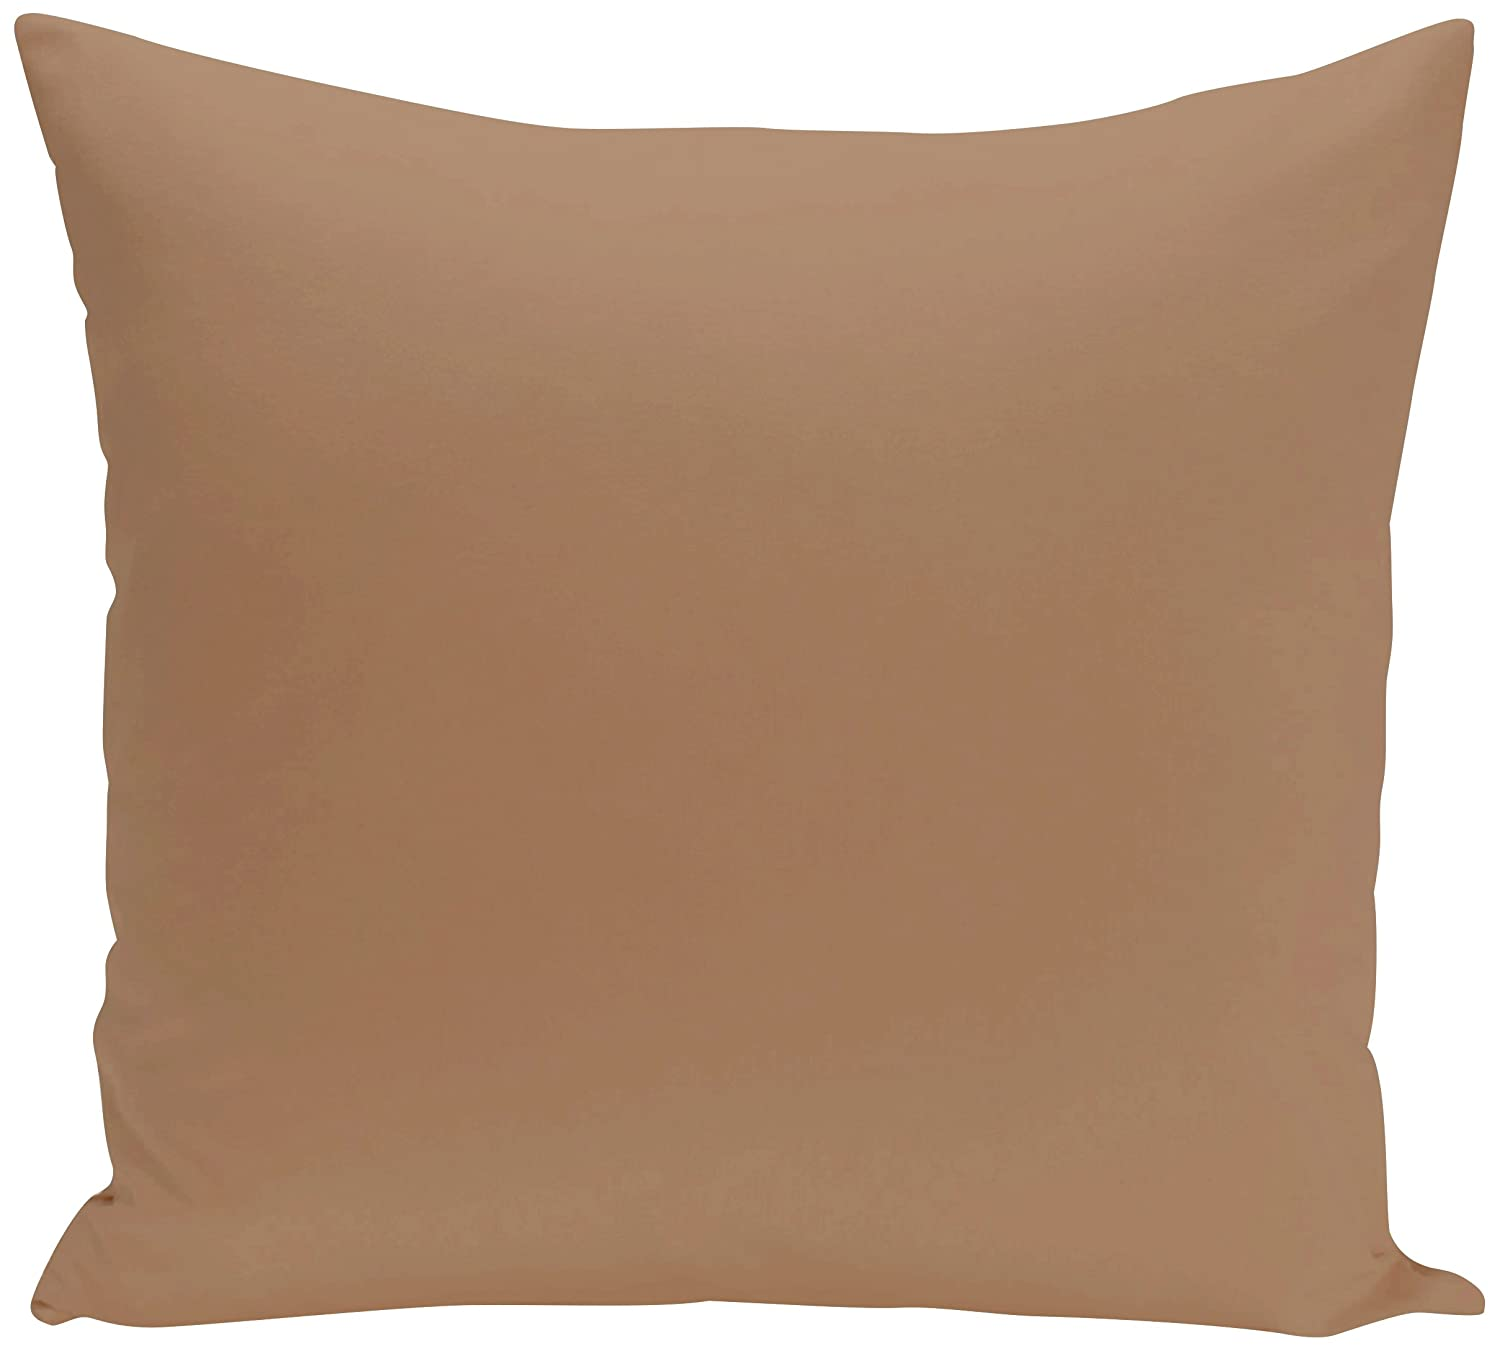 E by design PSOTA8-26 26 x 26-inch Solid Print Pillow Beige//Taupe 26x26 Brown